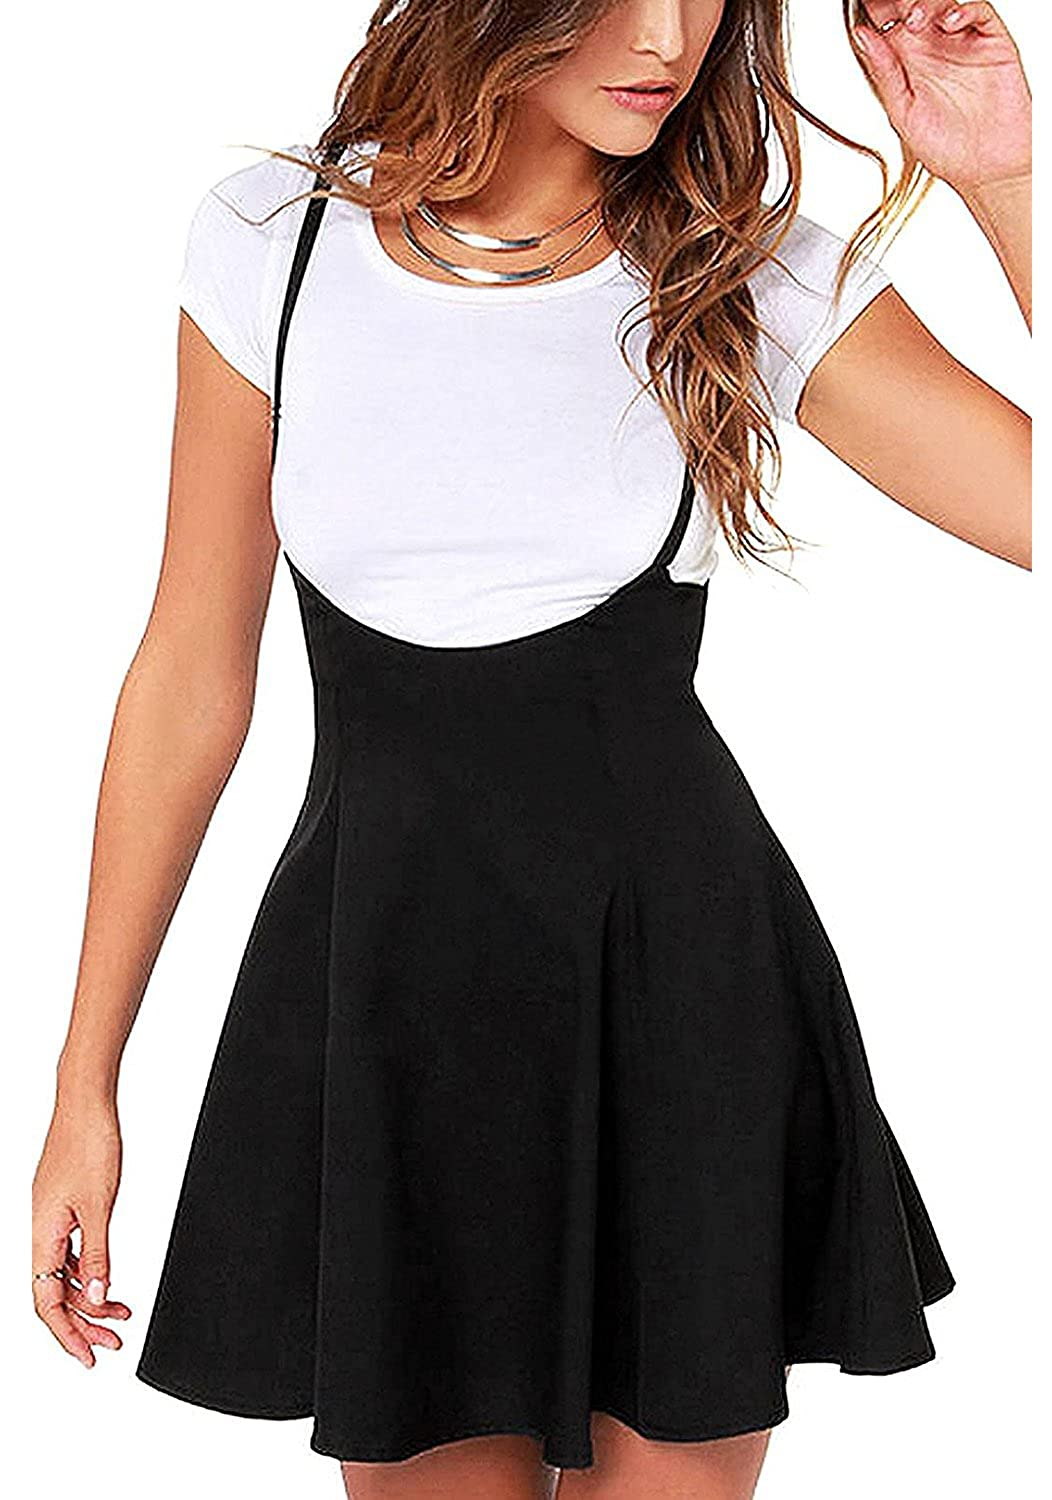 ANDUUNI Women's Strap Pleated A Line Dress Basic Suspender High Waisted Skirt